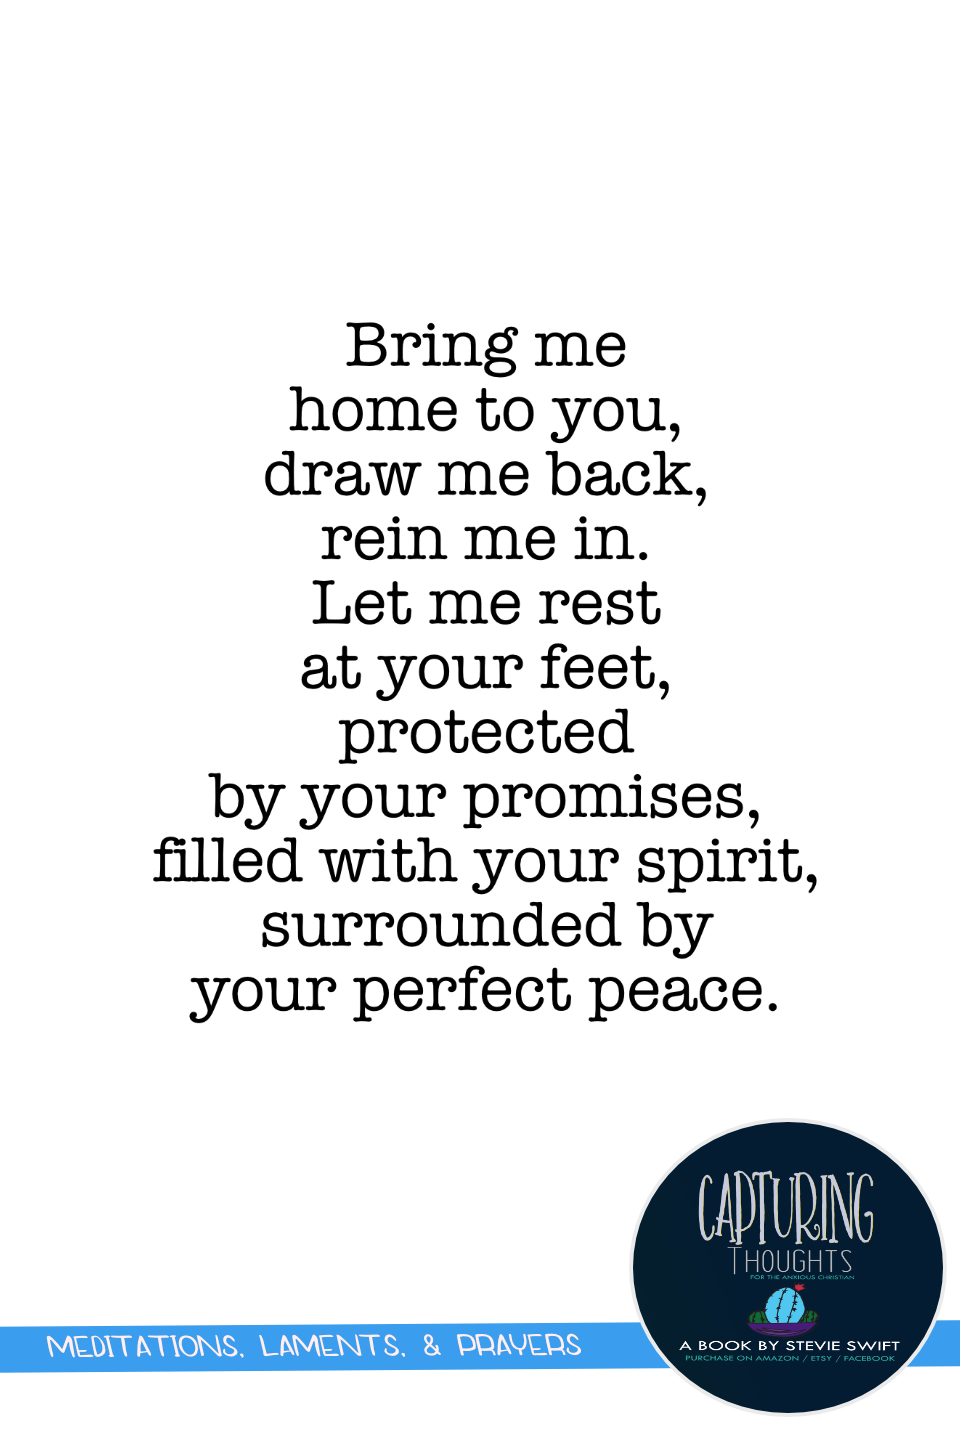 bring me home to you, draw me back, rein me in. let me rest at your feet, protected by your promises, filled with your spirit, surrounded by your perfect peace.